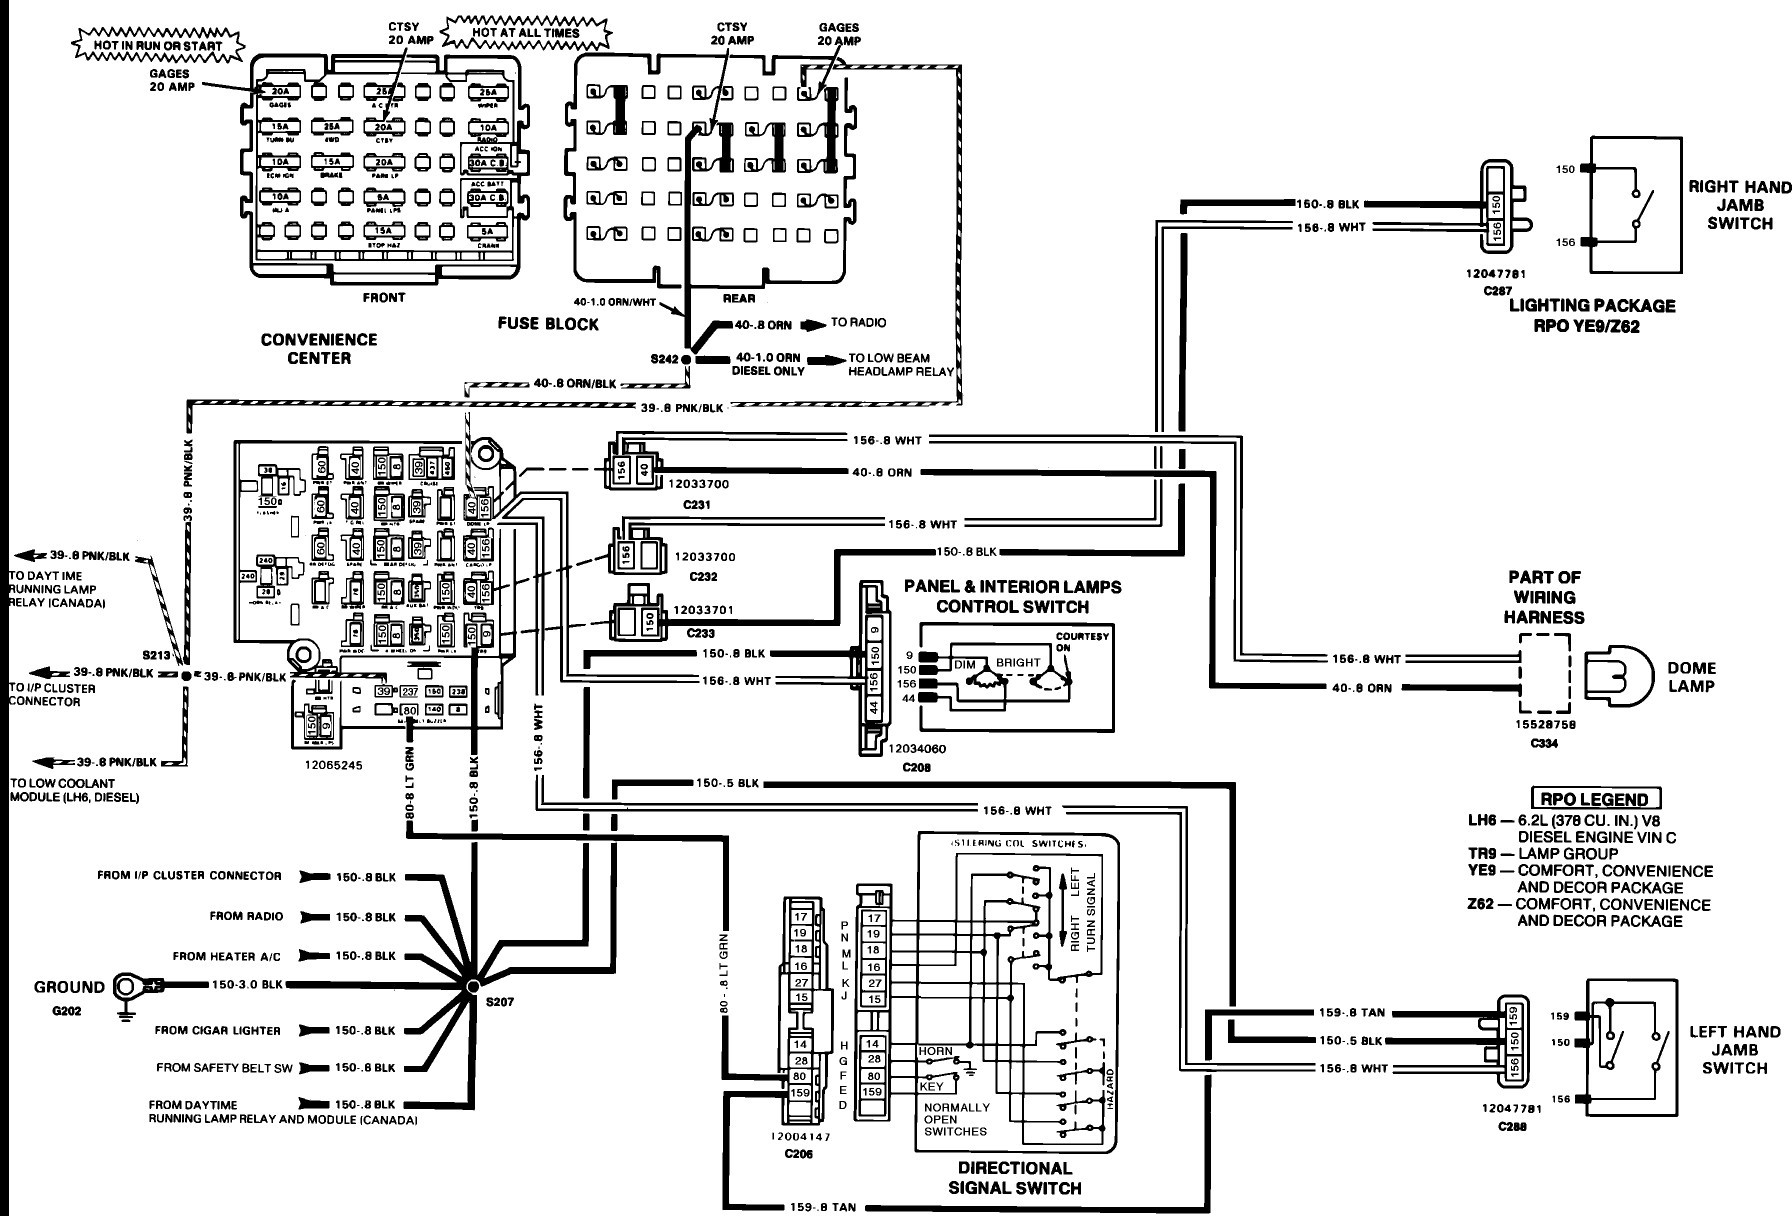 1991 Chevy Truck Wiring Diagram 07 Suburban Blower Motor Wiring Diagram Wiring Data Of 1991 Chevy Truck Wiring Diagram